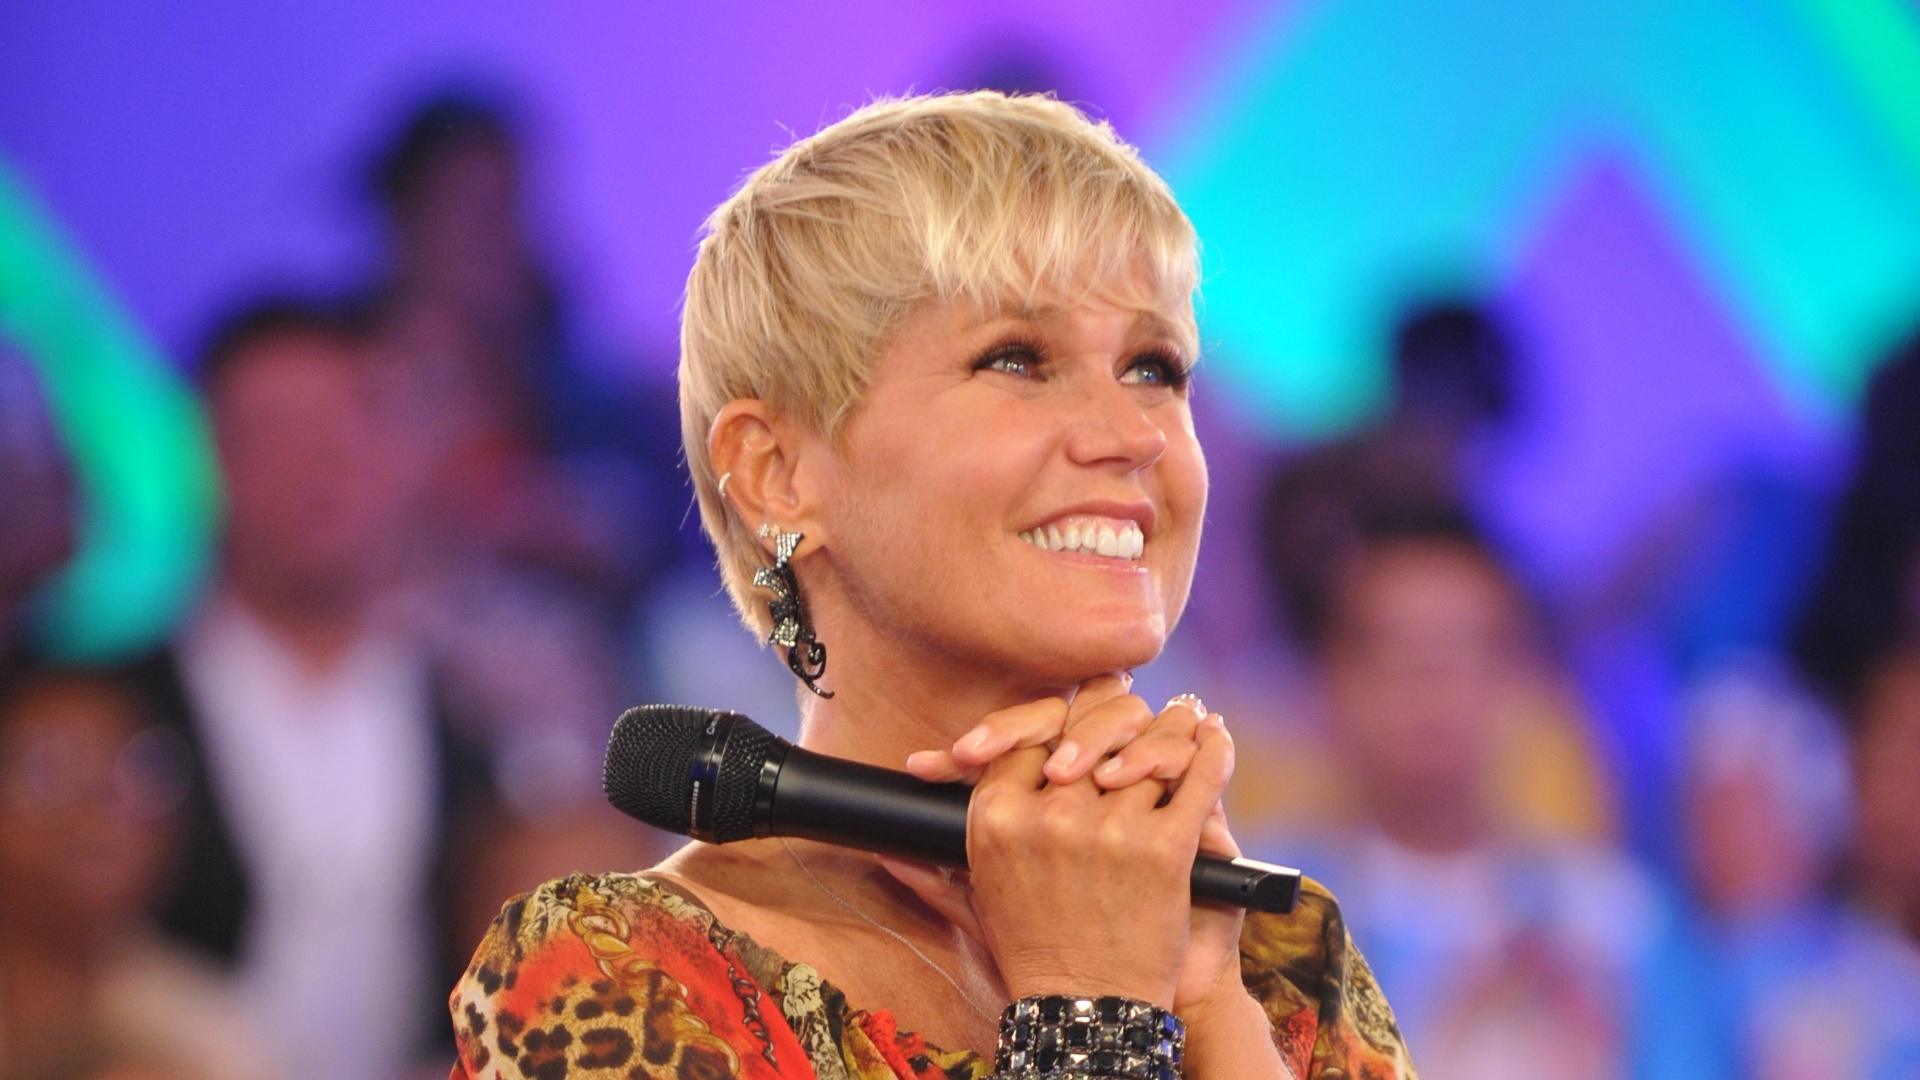 Xuxa grava programa especial para comemorar seu aniversrio de 49 anos (21/2/12)